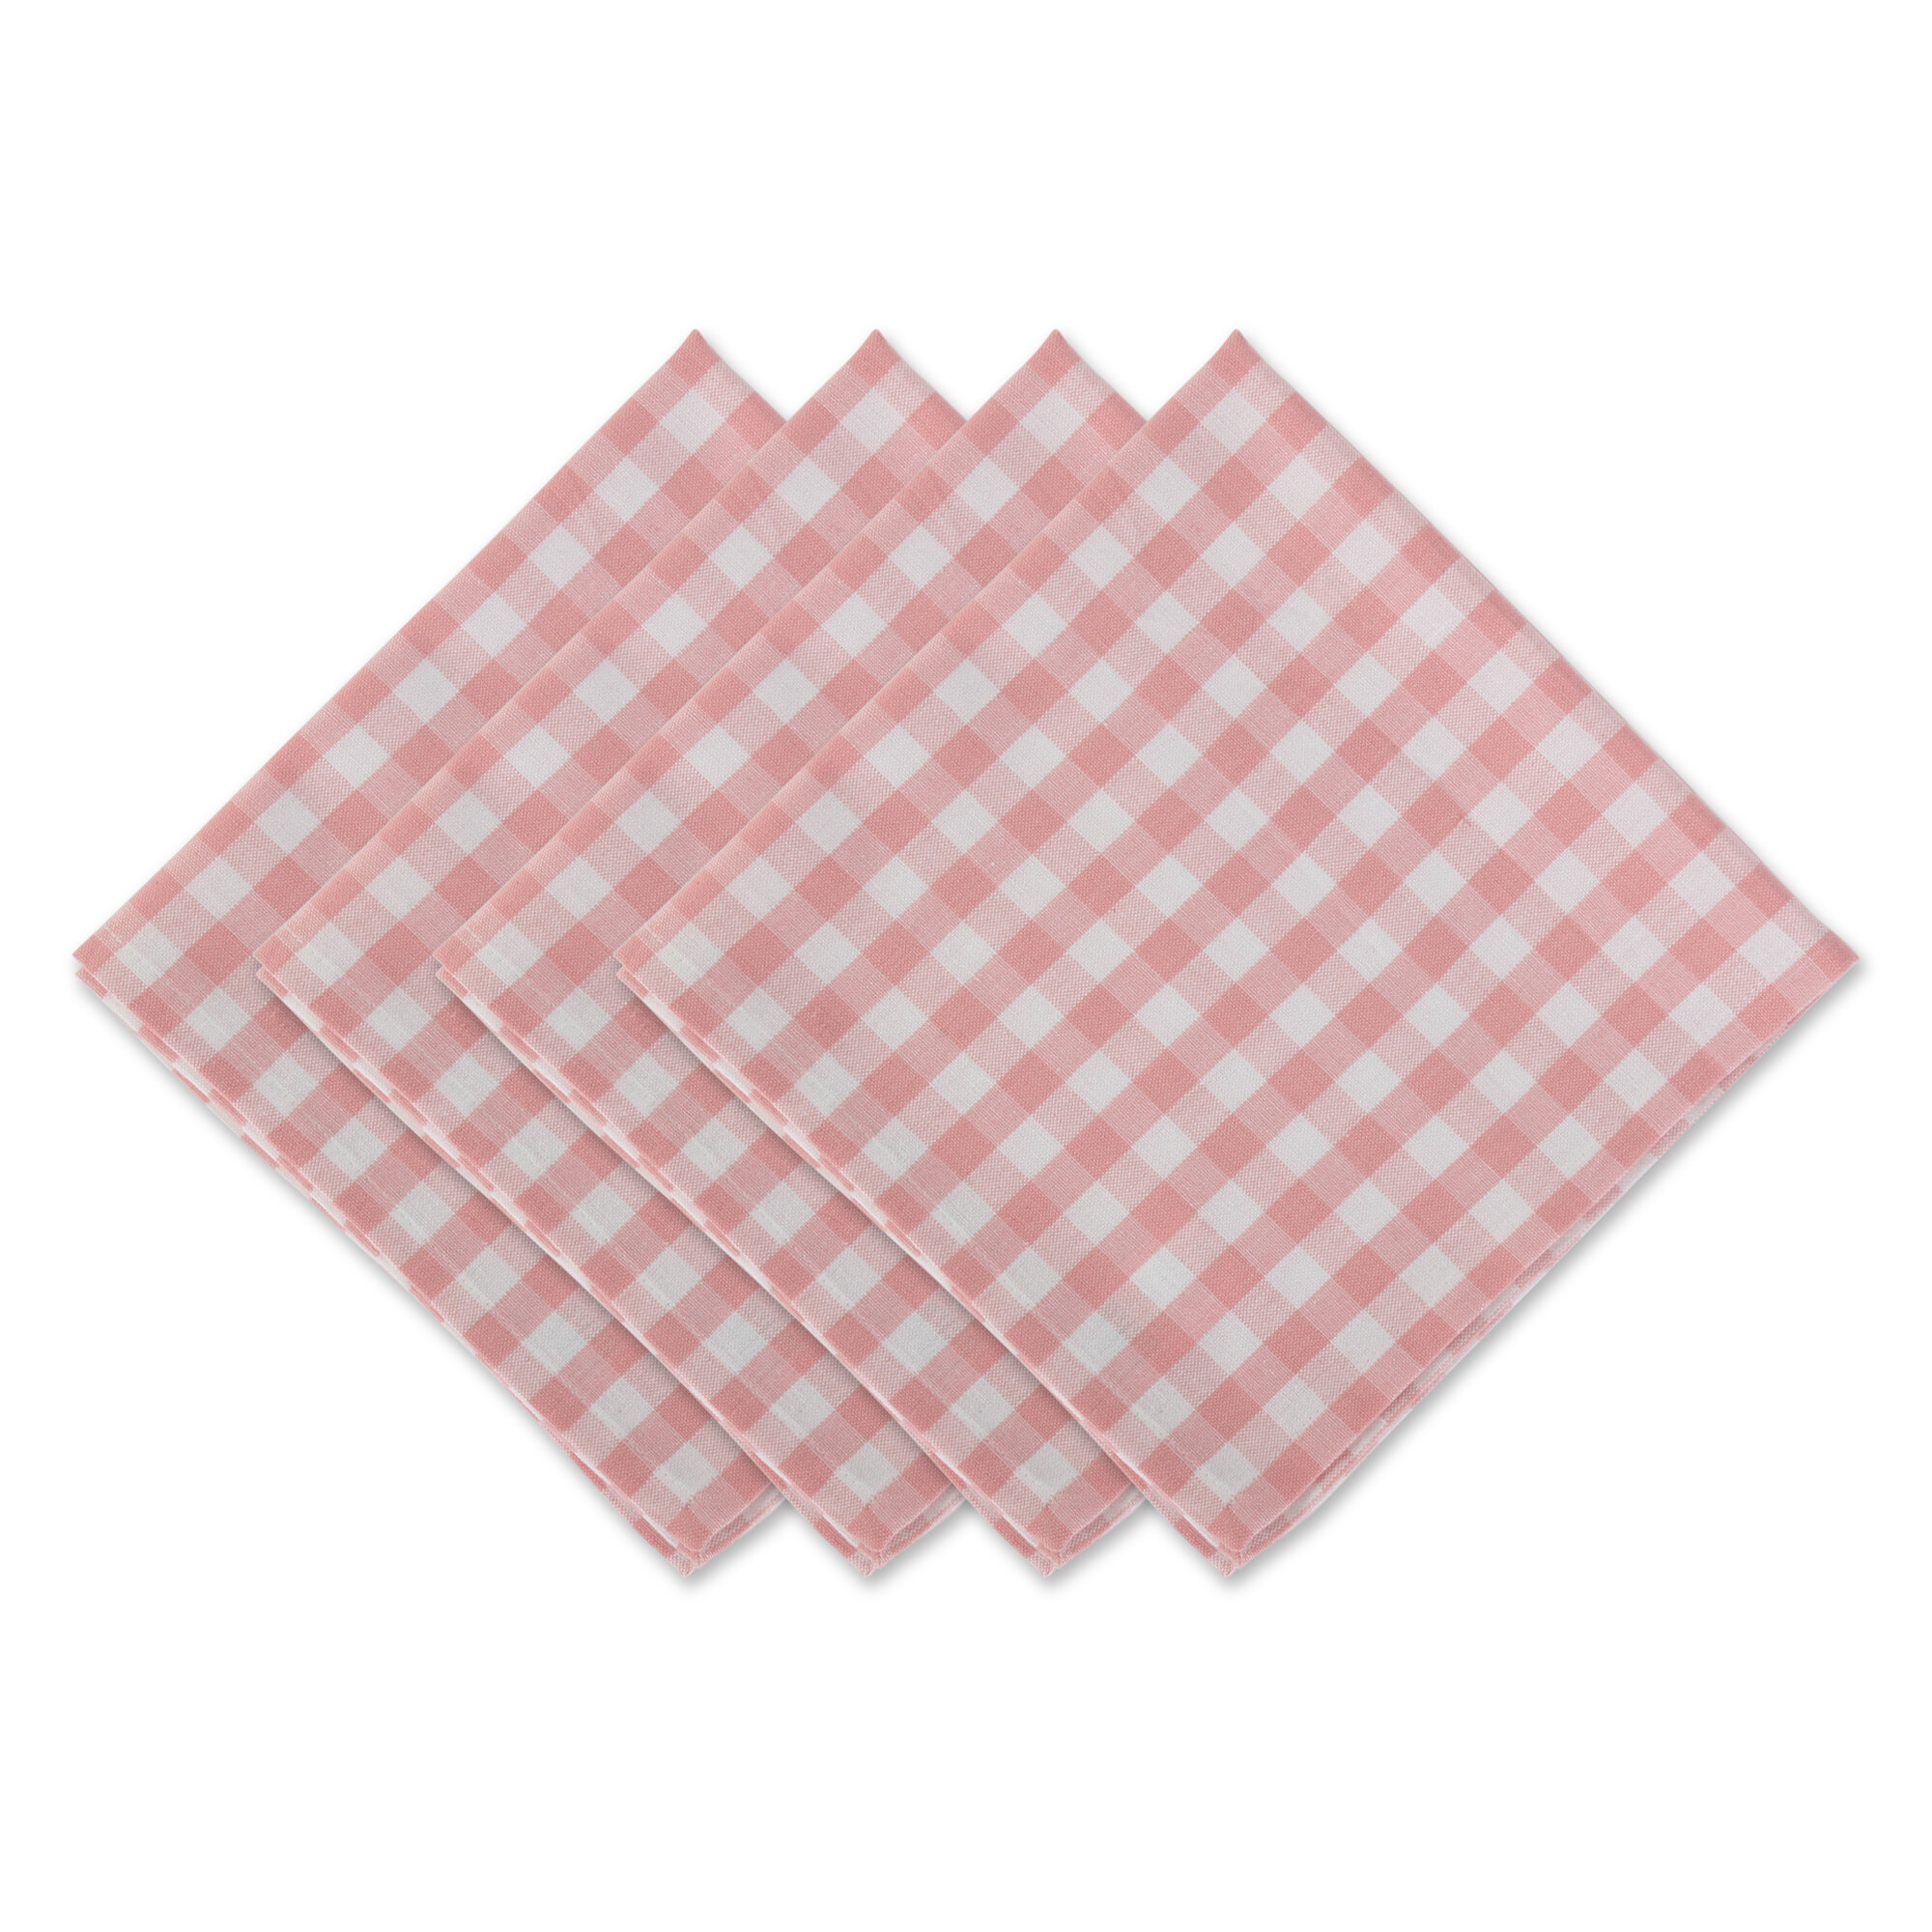 Cotton Pink Cloth Napkins From 30 Until 11 20 Wayfair Wayfair